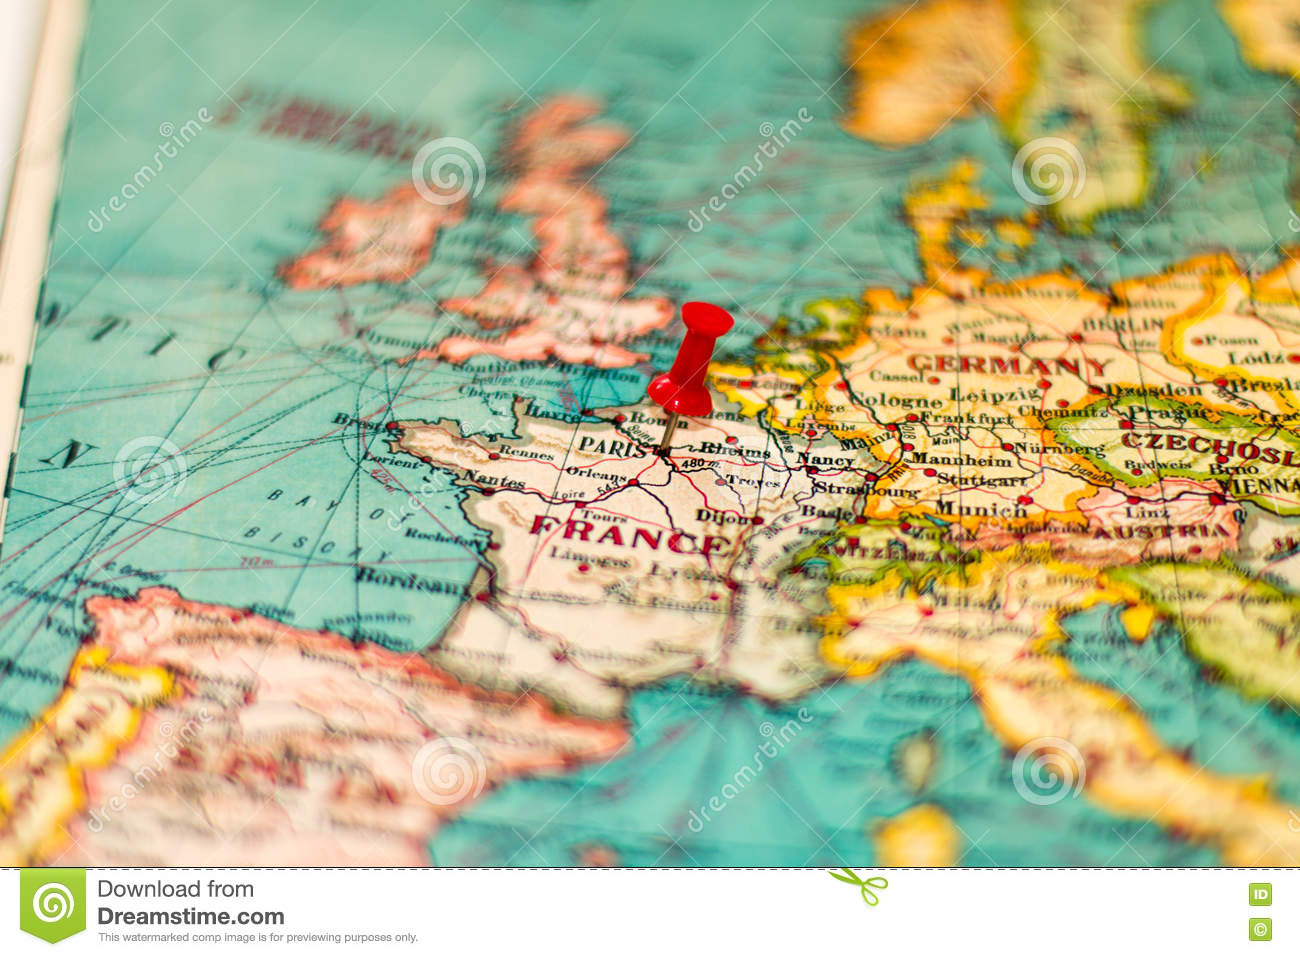 Paris On Europe Map.Paris France Pinned On Vintage Map Of Europe Stock Photo Image Of